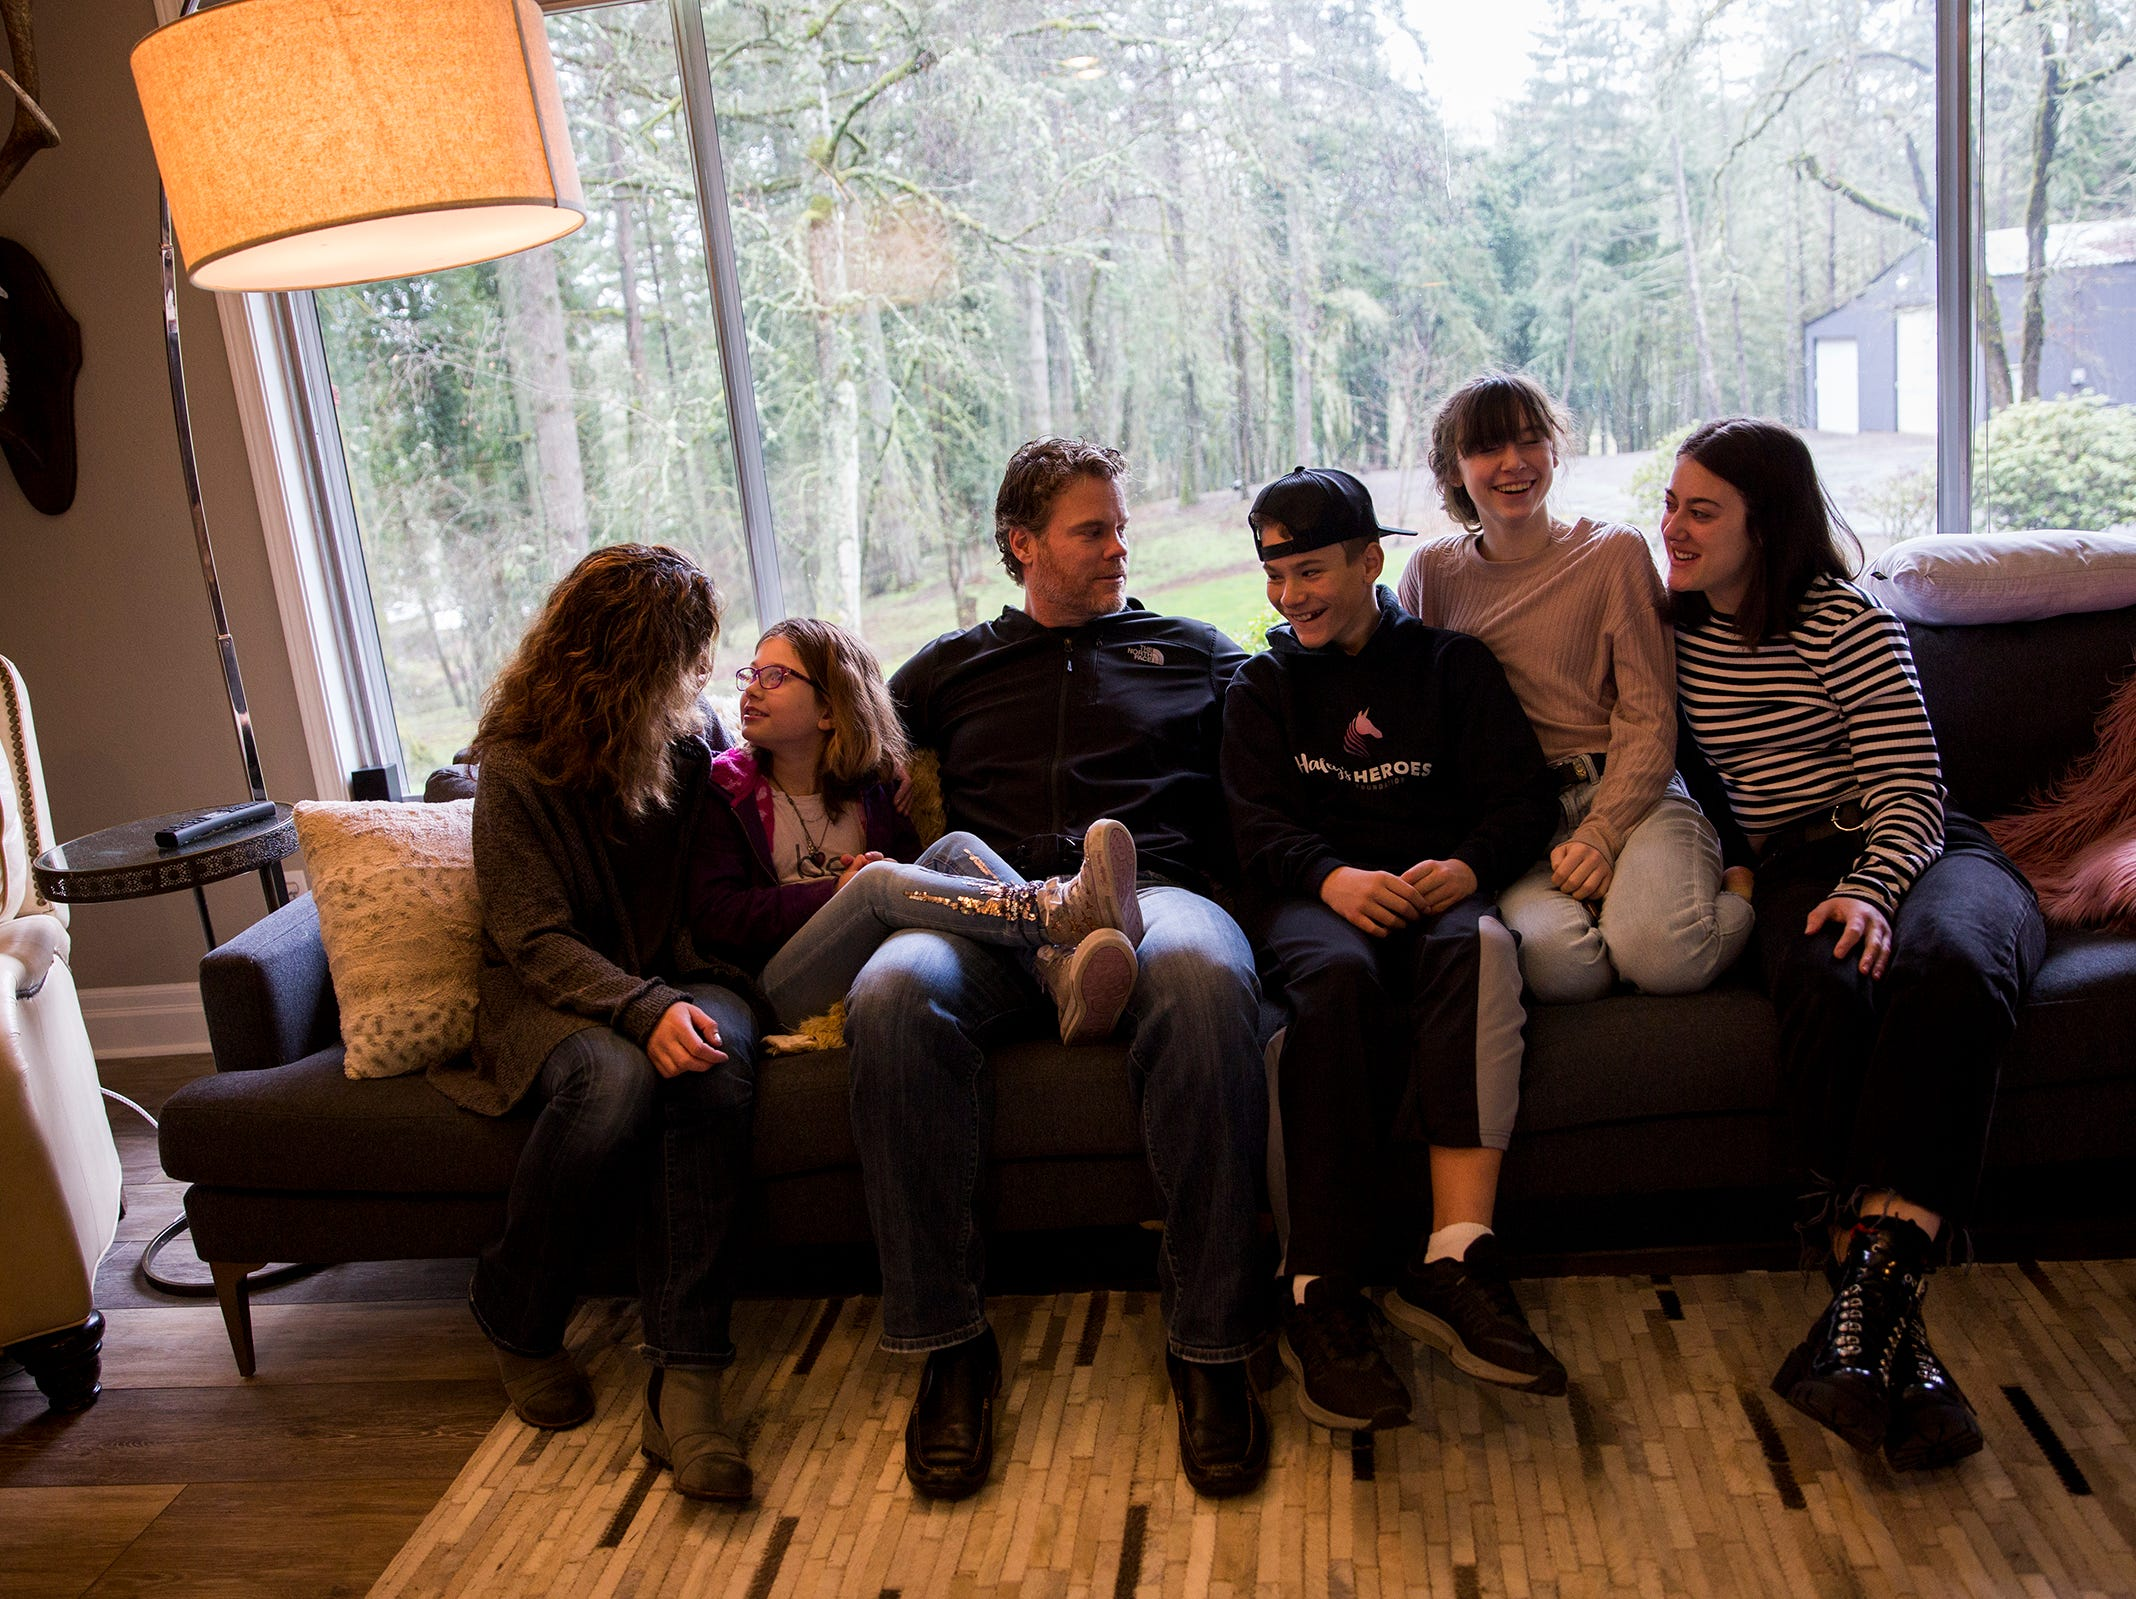 (From left to right) Melissa, Haley, Dean, Cole, Maddie and Audrey at their home in Salem on Saturday, Feb. 23, 2019. The family's foundation, Haley's Heroes, has raised $900,000 so far to fight Batten disease.